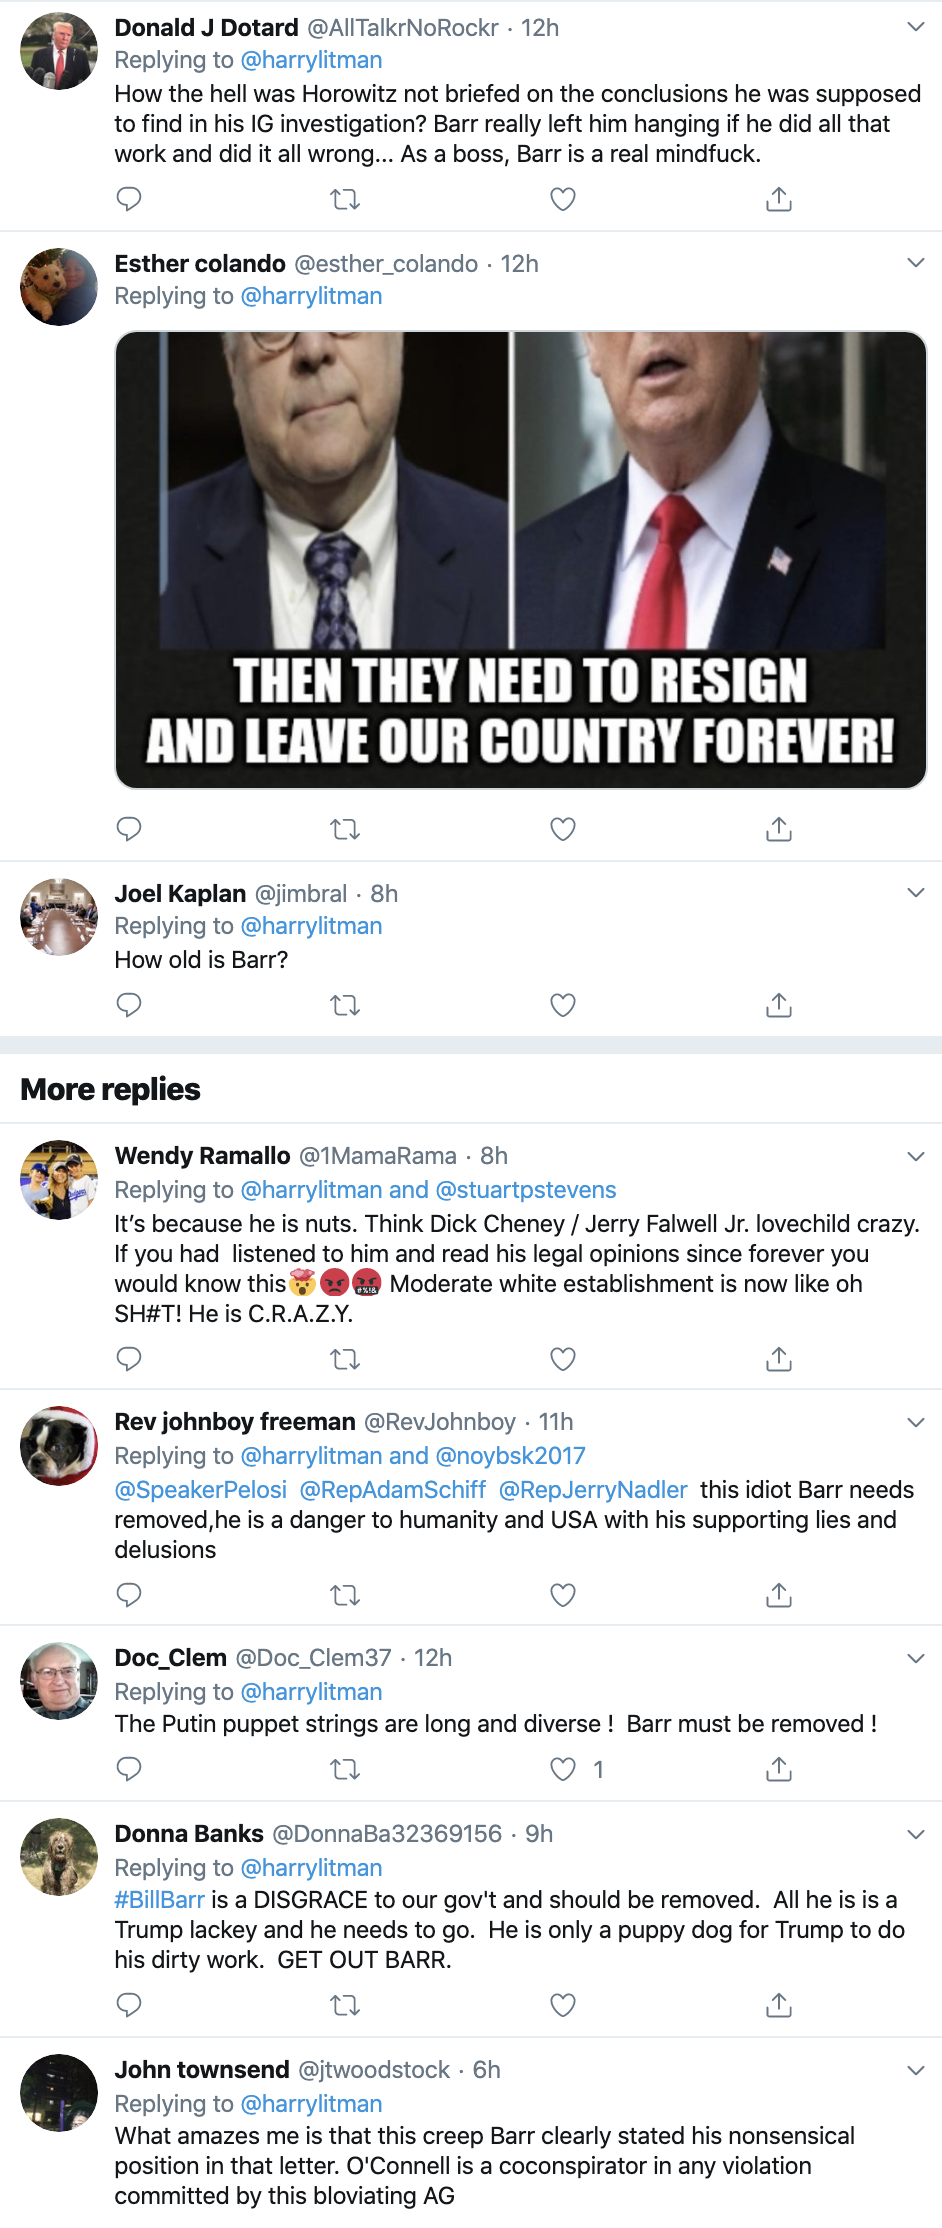 Screen-Shot-2019-12-10-at-9.23.41-AM Former FBI General Counsel Exonerated By IG Report Wants Apology Conspiracy Theory Featured Investigation Russia Top Stories